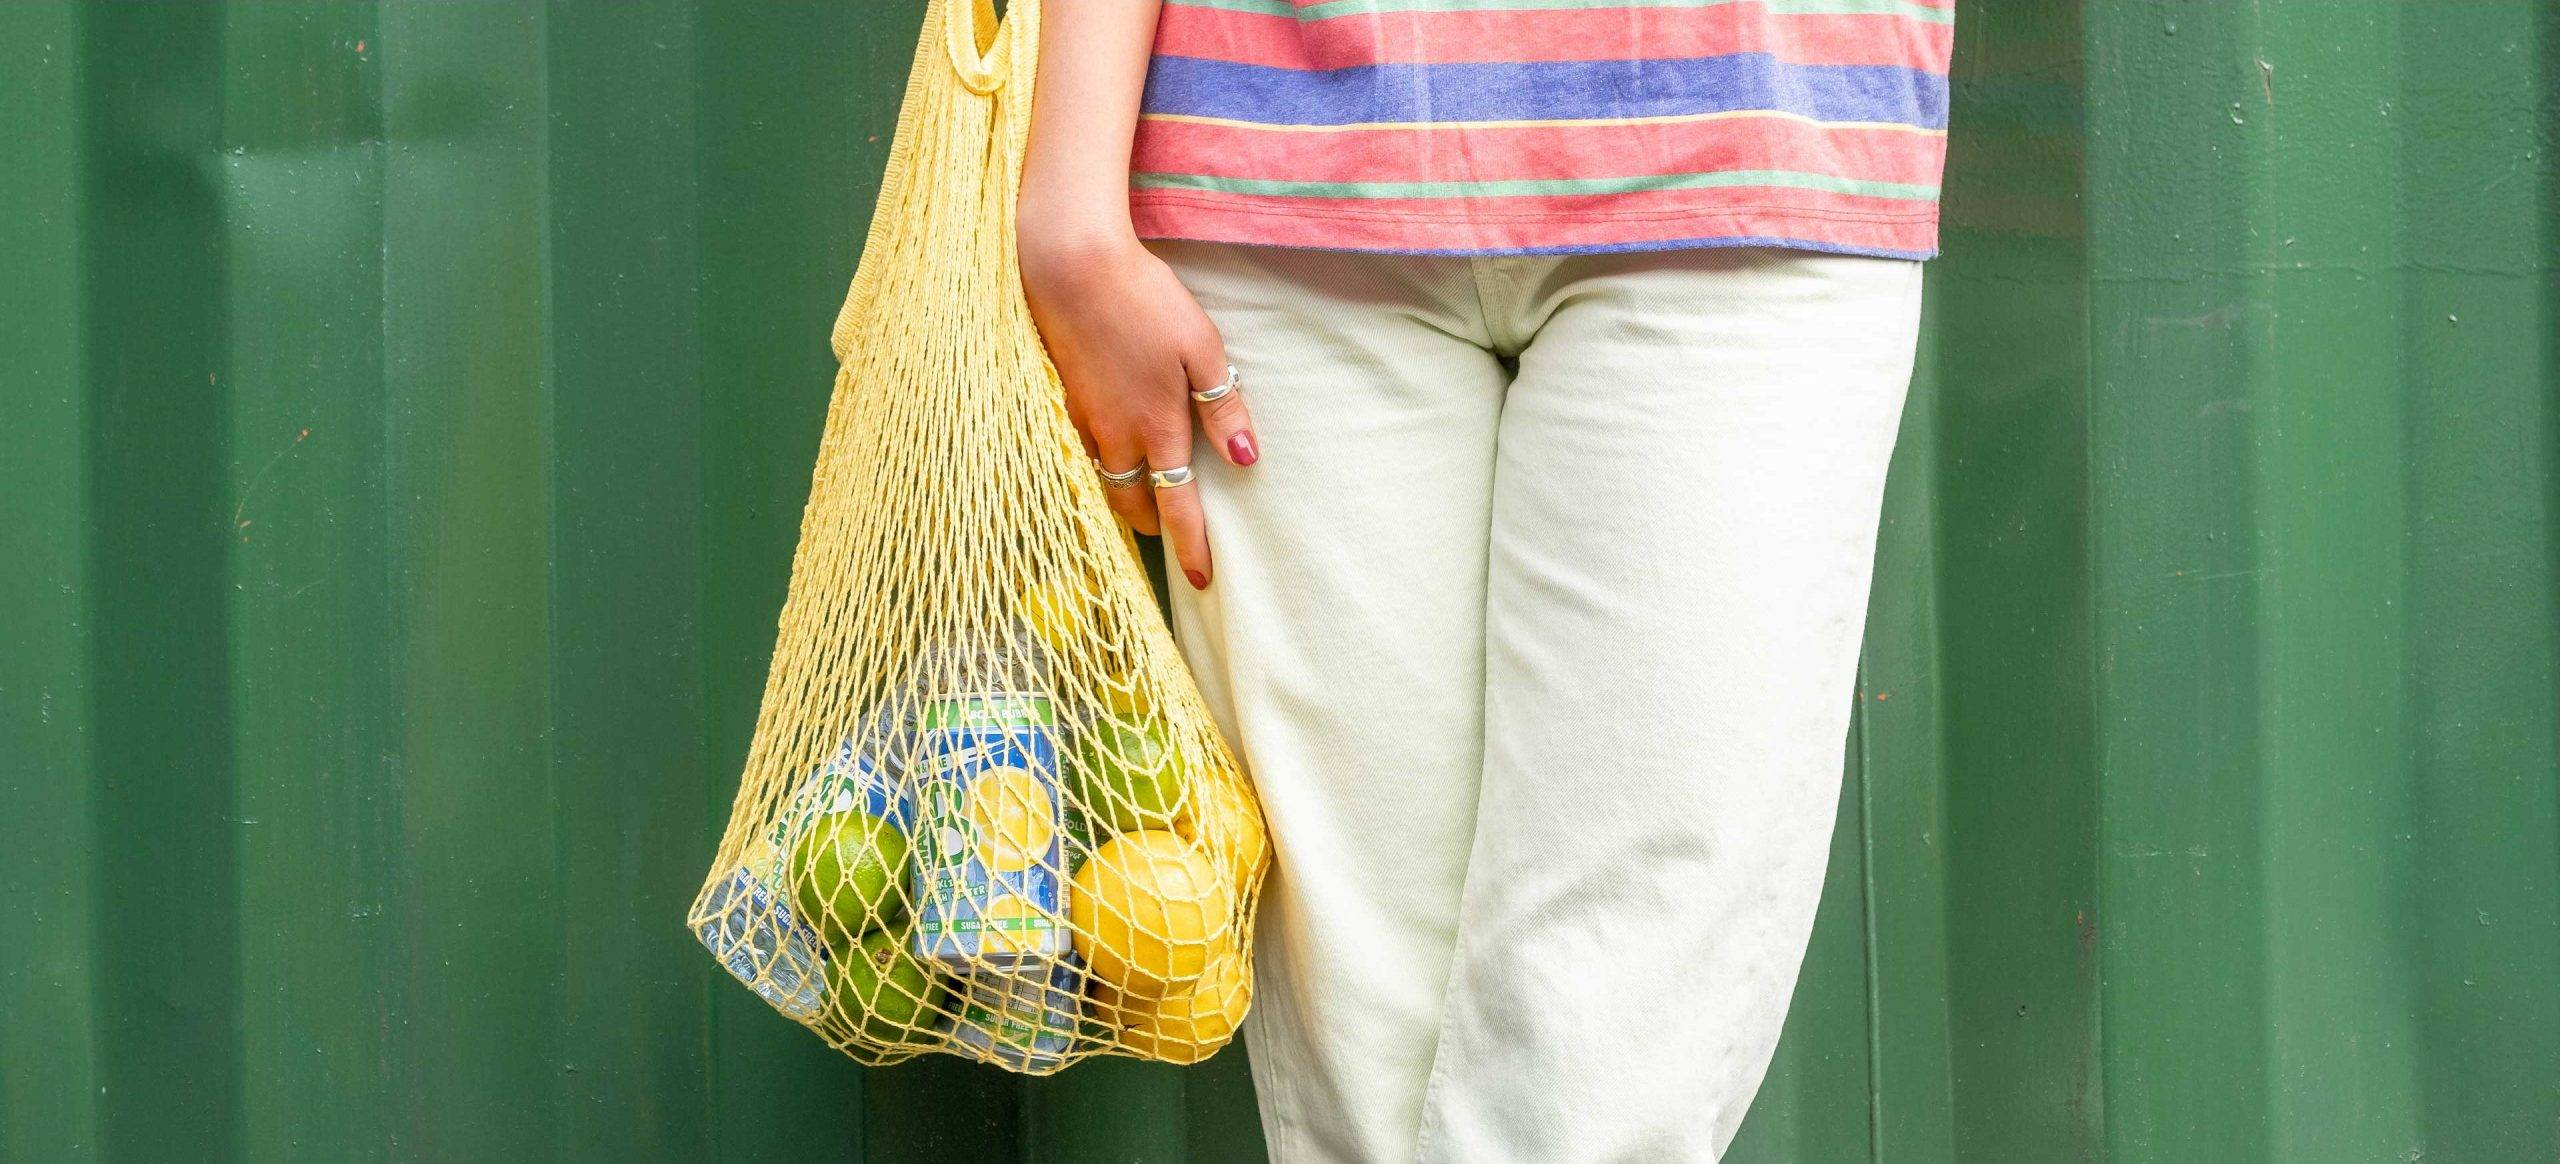 A woman holding a bag of lemons and limes, with a can of Macb sparkling lemon and lime flavoured spring water